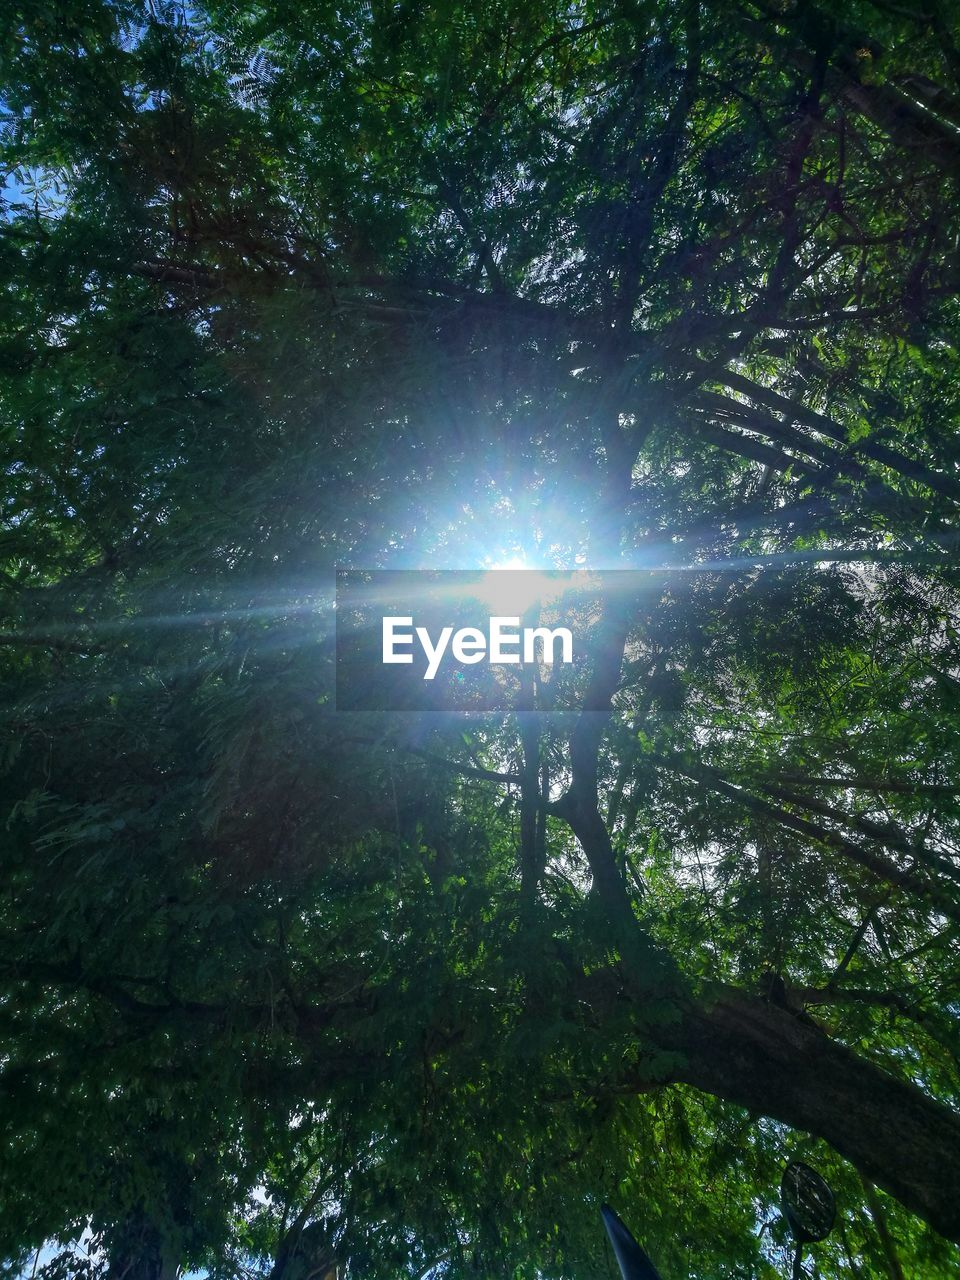 tree, plant, lens flare, sunlight, low angle view, forest, growth, beauty in nature, nature, sunbeam, land, day, tranquility, sky, sun, outdoors, no people, scenics - nature, branch, tranquil scene, bright, streaming, tree canopy, solar flare, brightly lit